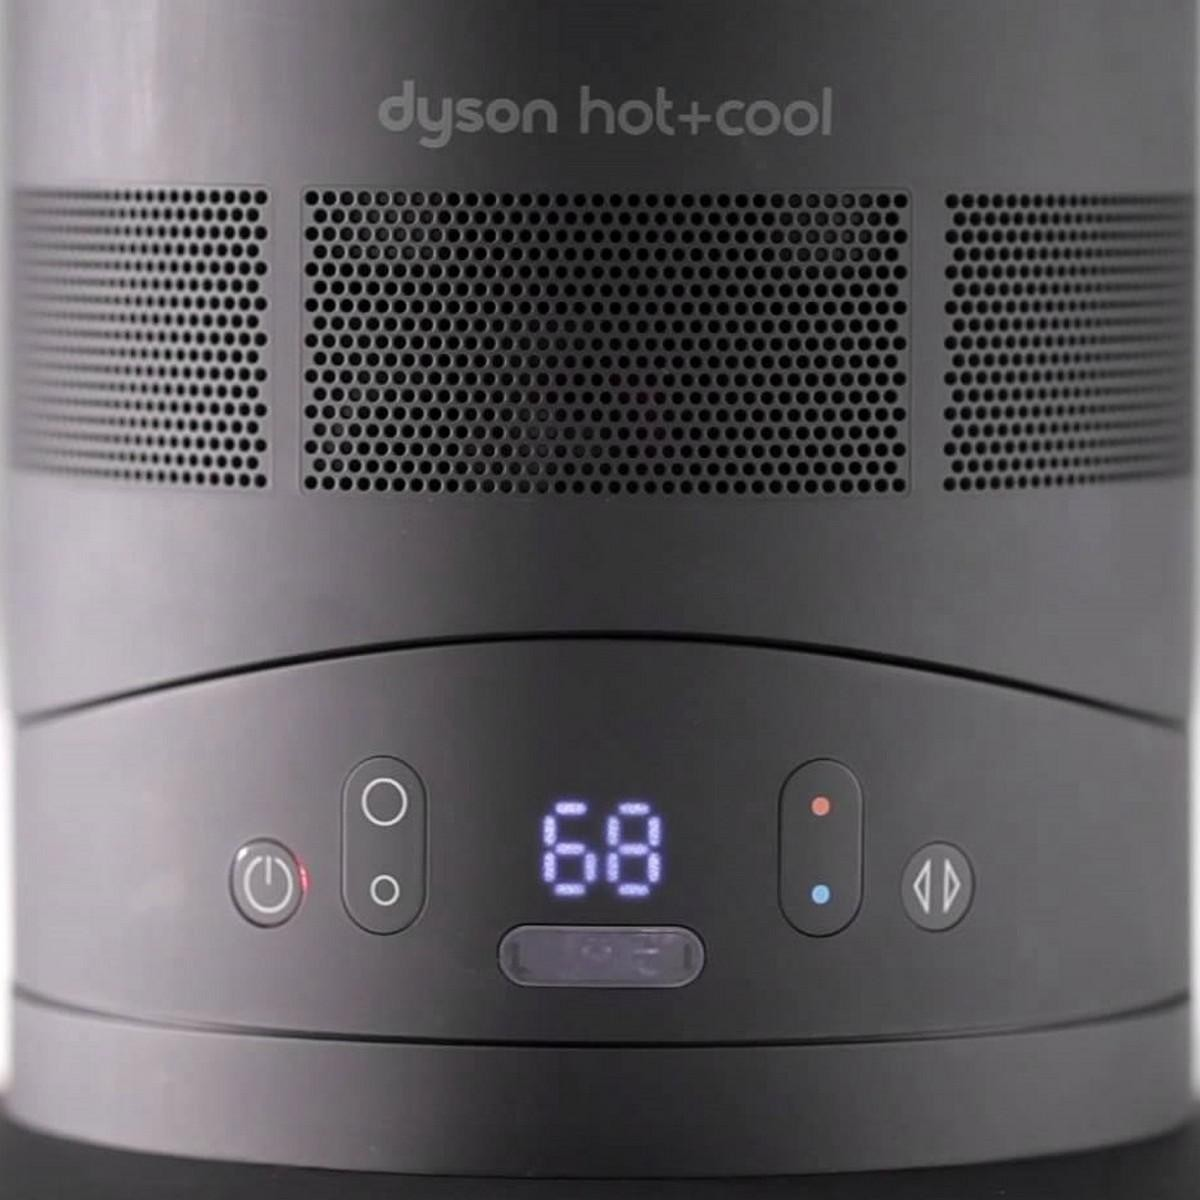 am05 hot cool fan heater dyson design is this. Black Bedroom Furniture Sets. Home Design Ideas